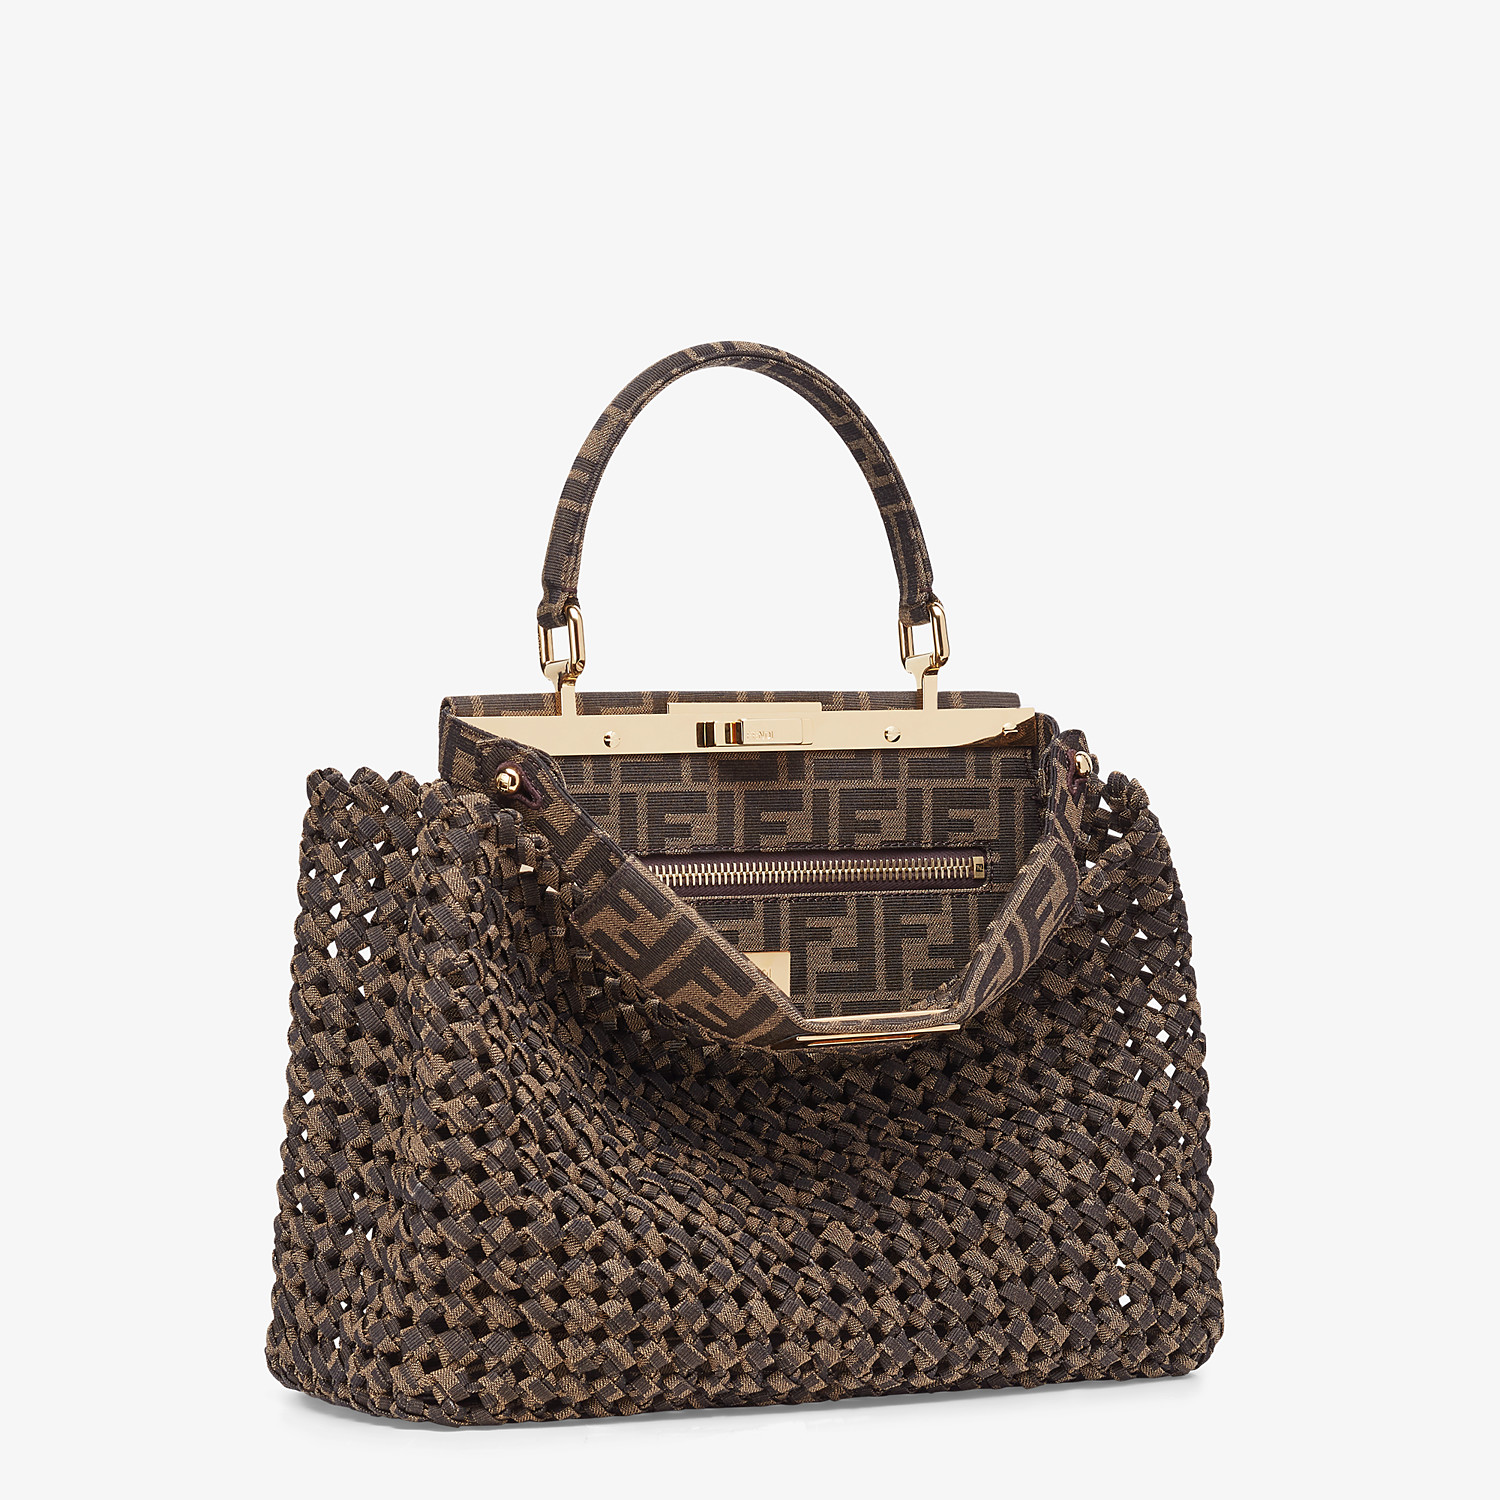 FENDI PEEKABOO ICONIC MEDIUM - Jacquard fabric interlace bag - view 3 detail